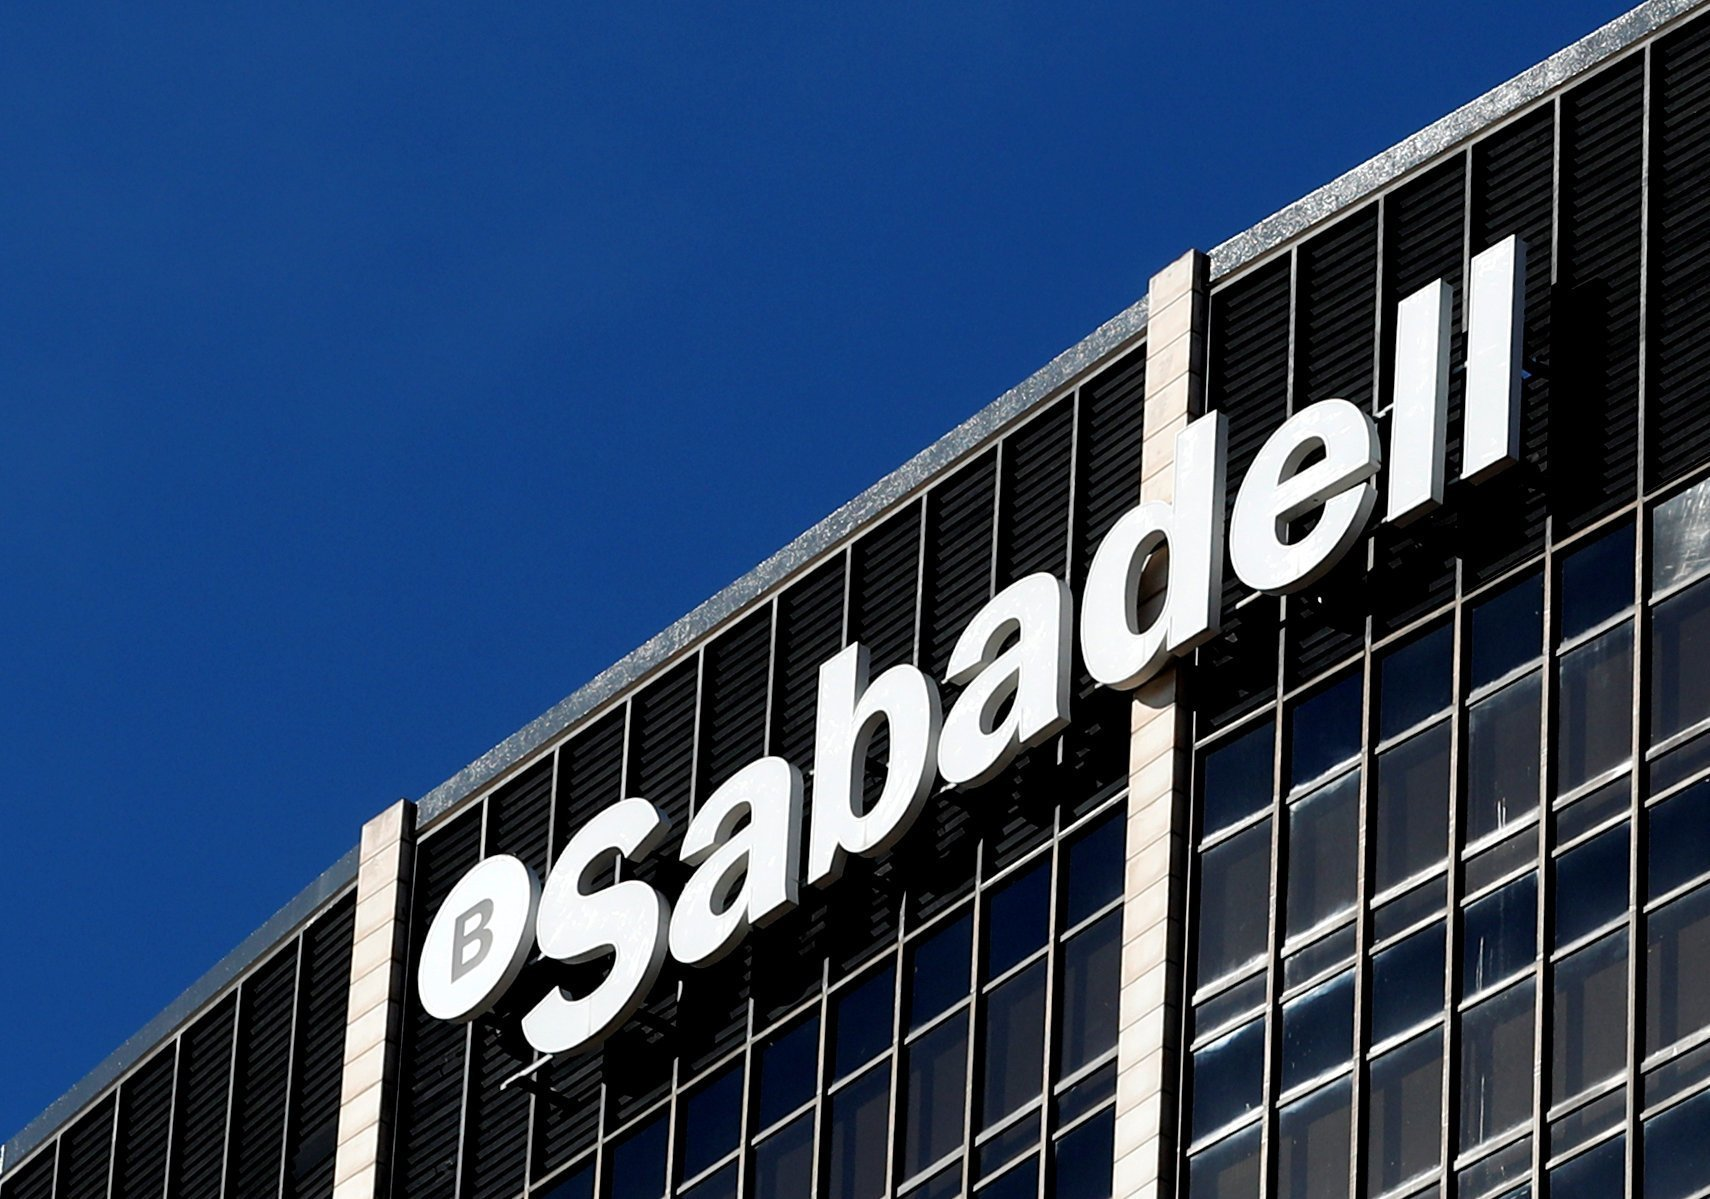 Sabaedell Sabadell Confirms Move Of Headquarters To Alicante Spain Wsj